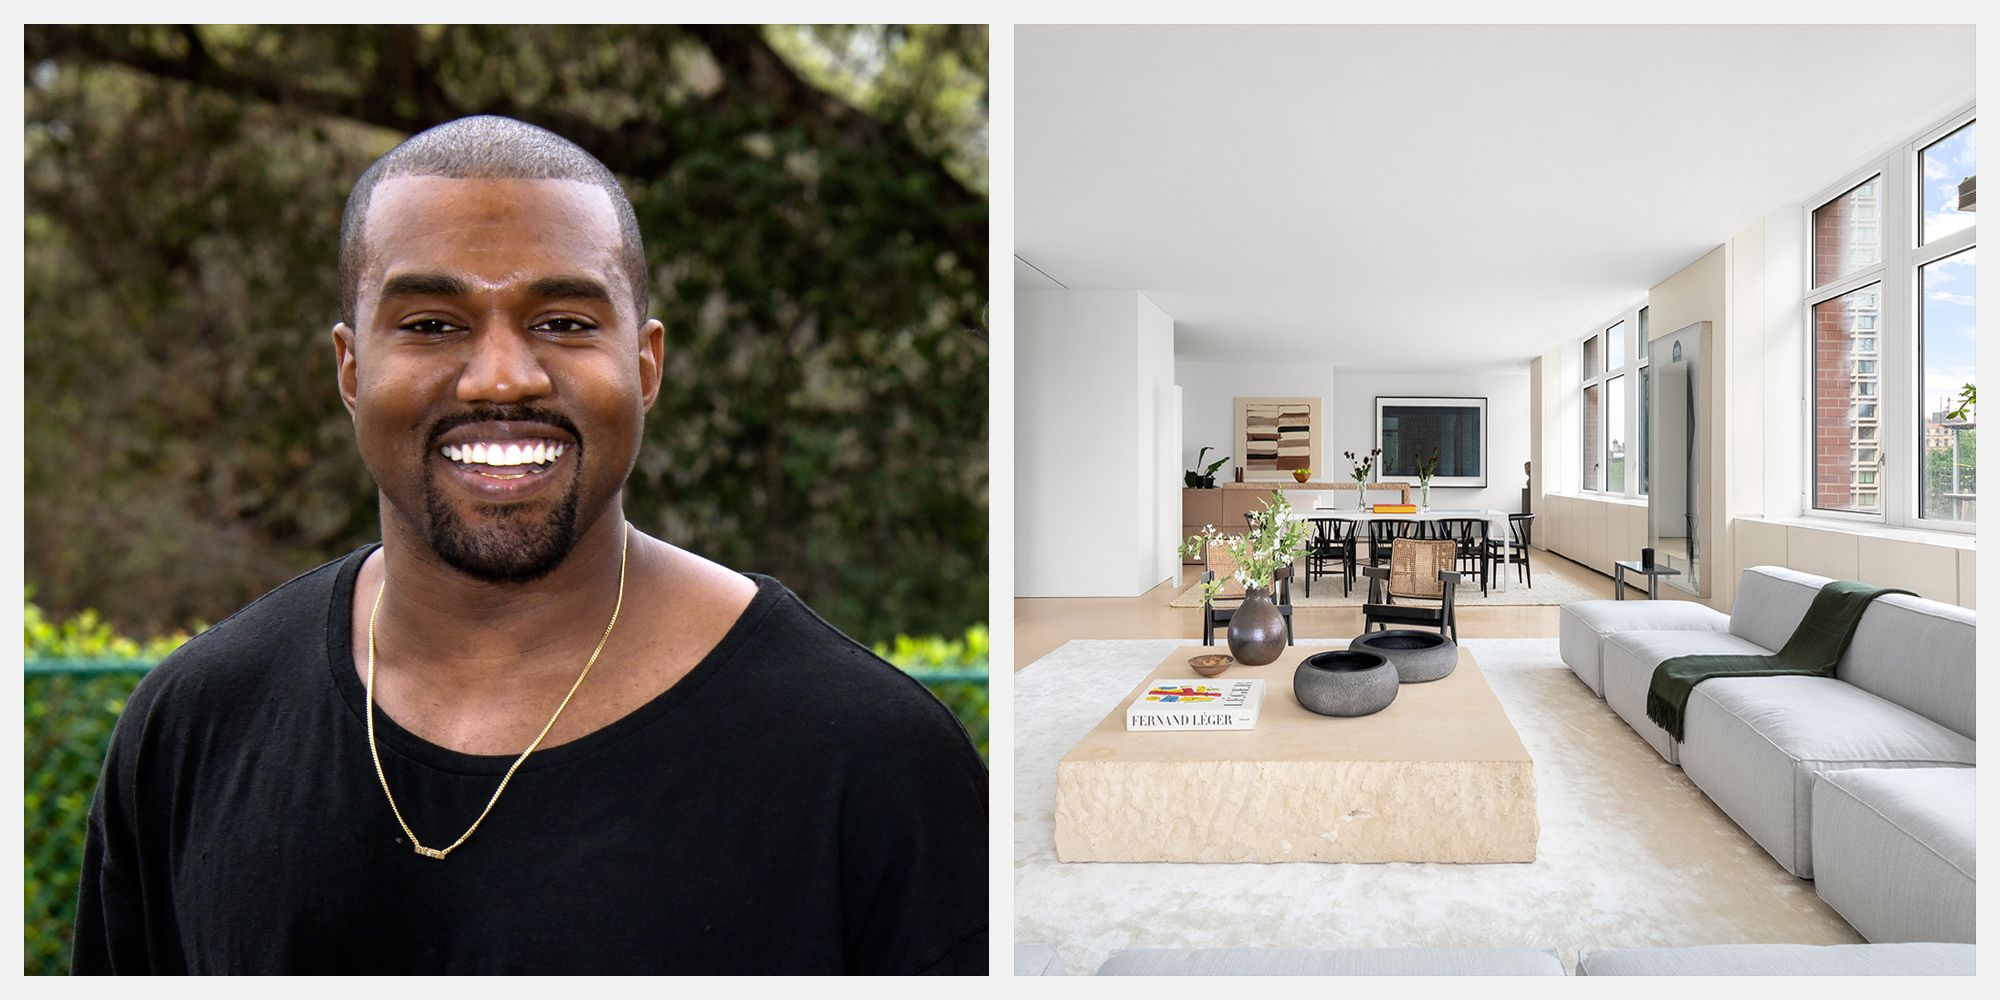 Kanye West's Long-Time SoHo Home is on Sale for $4.7 Million